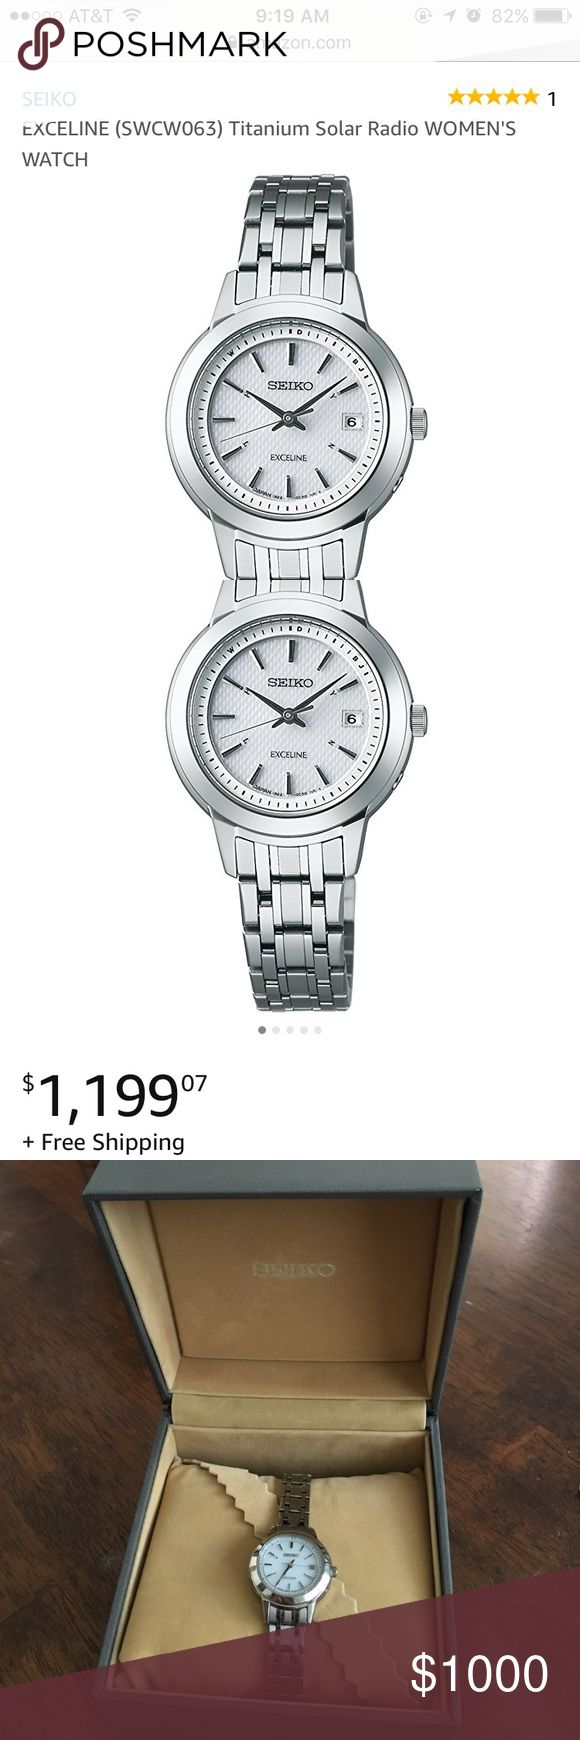 Seiko Exceline Titanium Women's Watch SEIKO Exceline Titanium Solar Radio Women's Watch. GOING FOR $1,200 on Amazon as of this morning (4/28)!!! No flaws, just normal light-wear on the BACK of the face (see last pic). Don't miss out on this deal!!!🎉🎊  Water resistant 10 bars. Check second listing for more pics!! Comes with everything: box, Seiko guarantee, original packaging, care and instruction booklets, etc. Seiko Accessories Watches